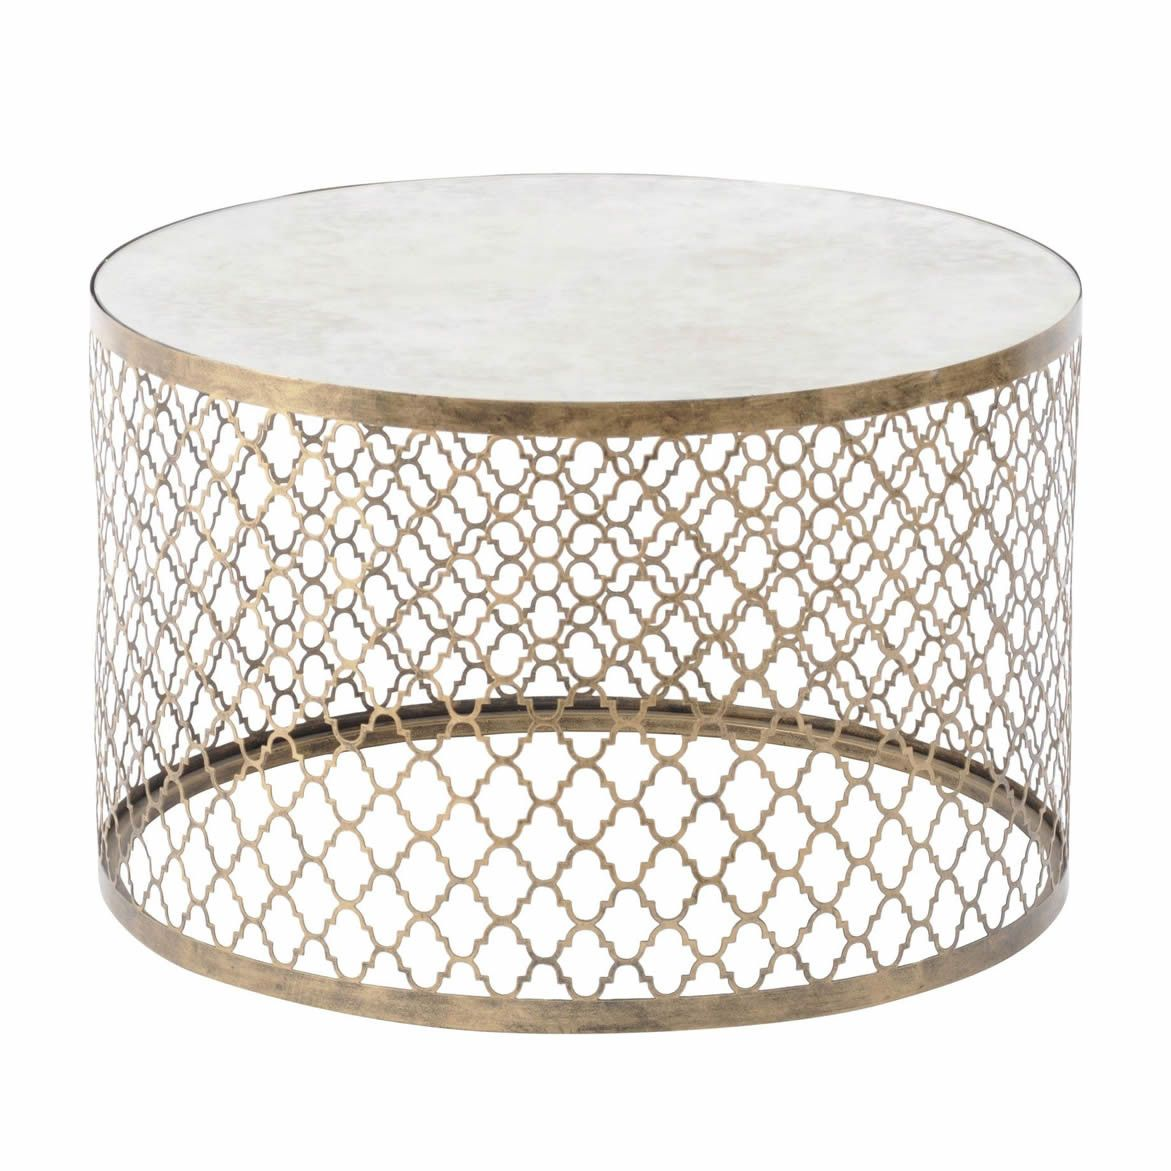 Marrakech round mirrored coffee table marrakech mirrored coffee